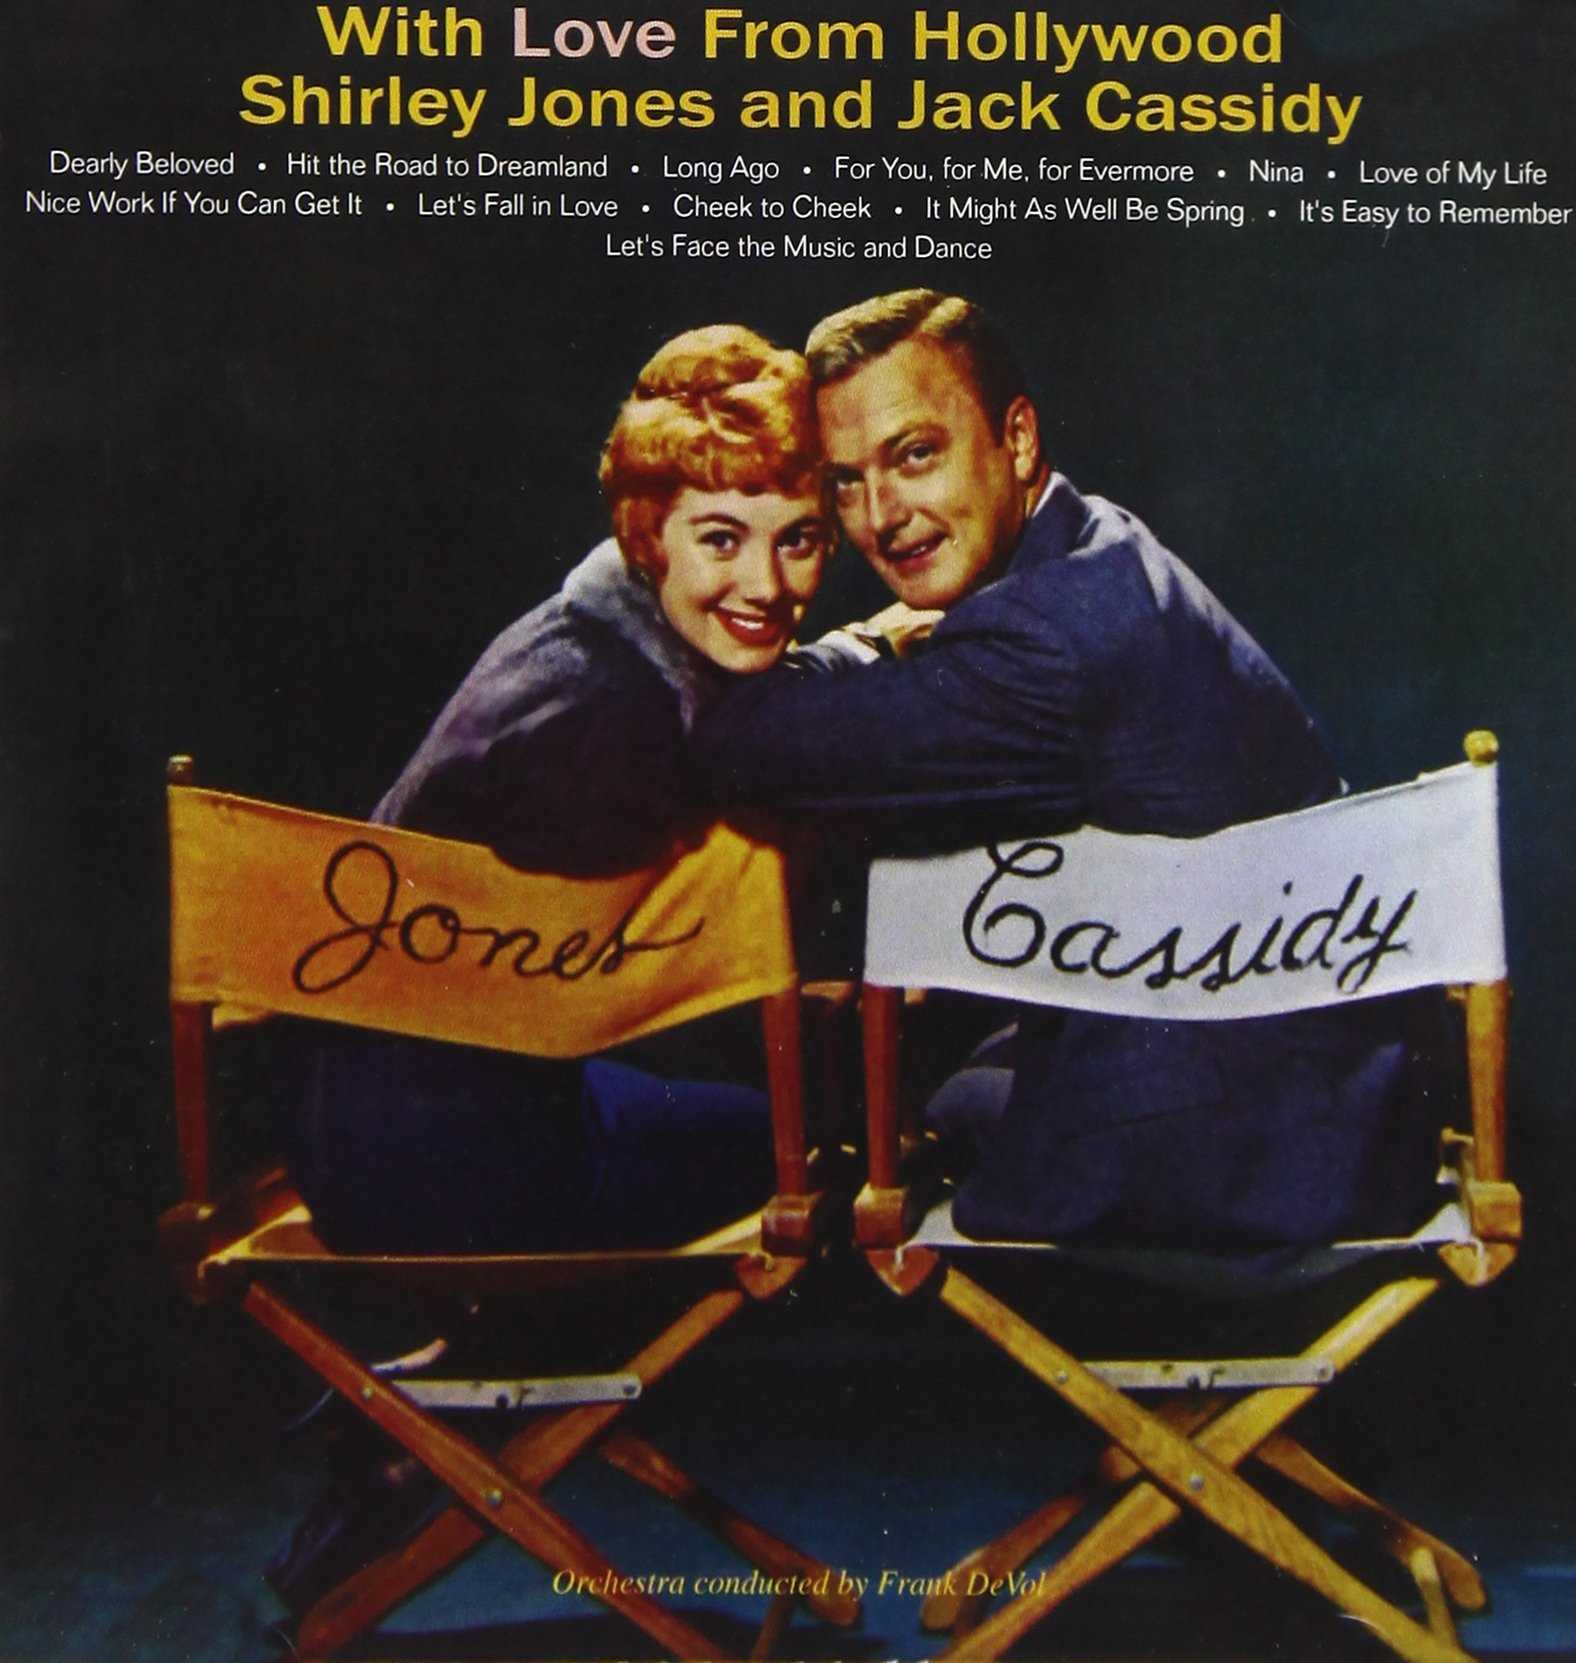 CD : SHIRLEY JONES & JACK CASSIDY - With Love From Hollywood (United Kingdom - Import)